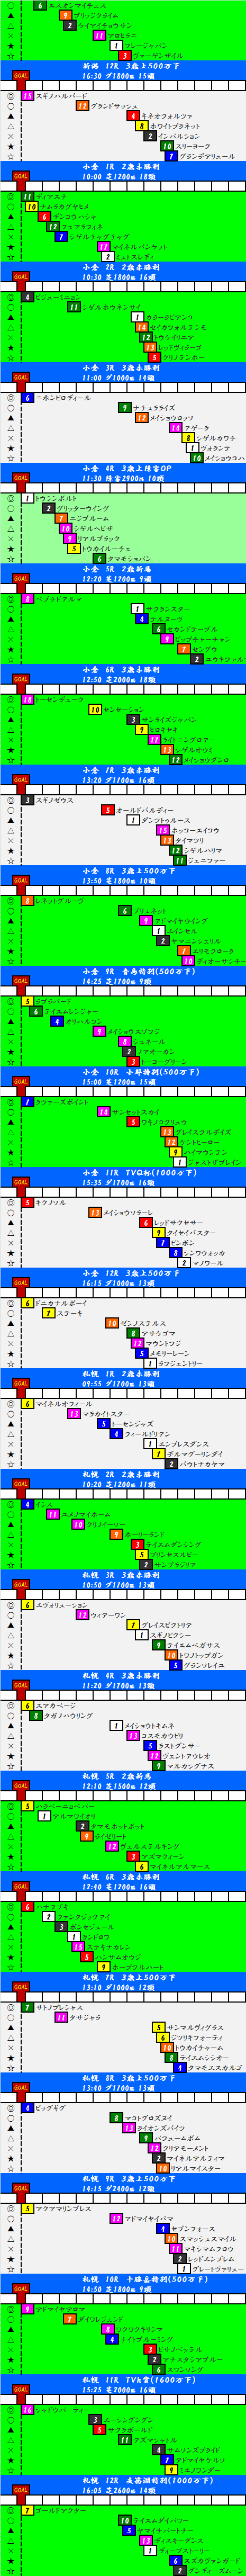 201408232.png